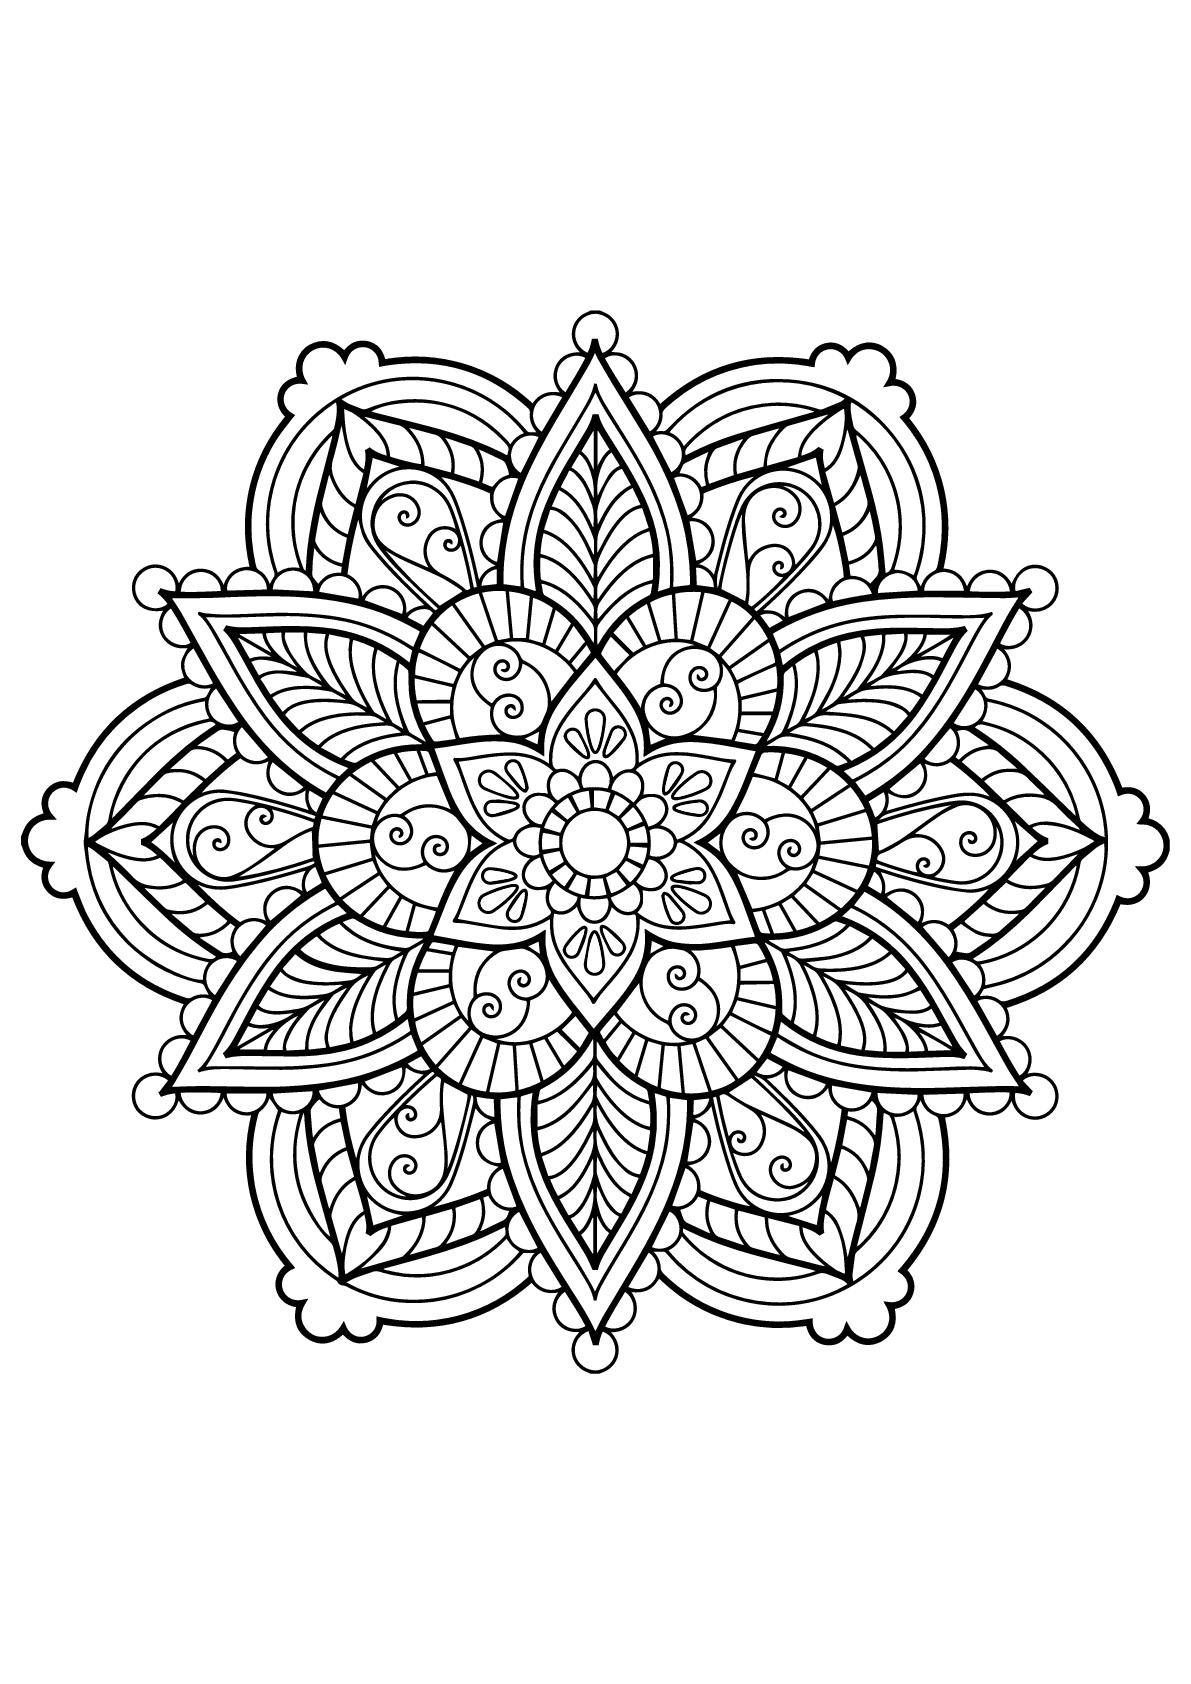 - Mandala From Free Coloring Books For Adults 28 - Mandalas Adult